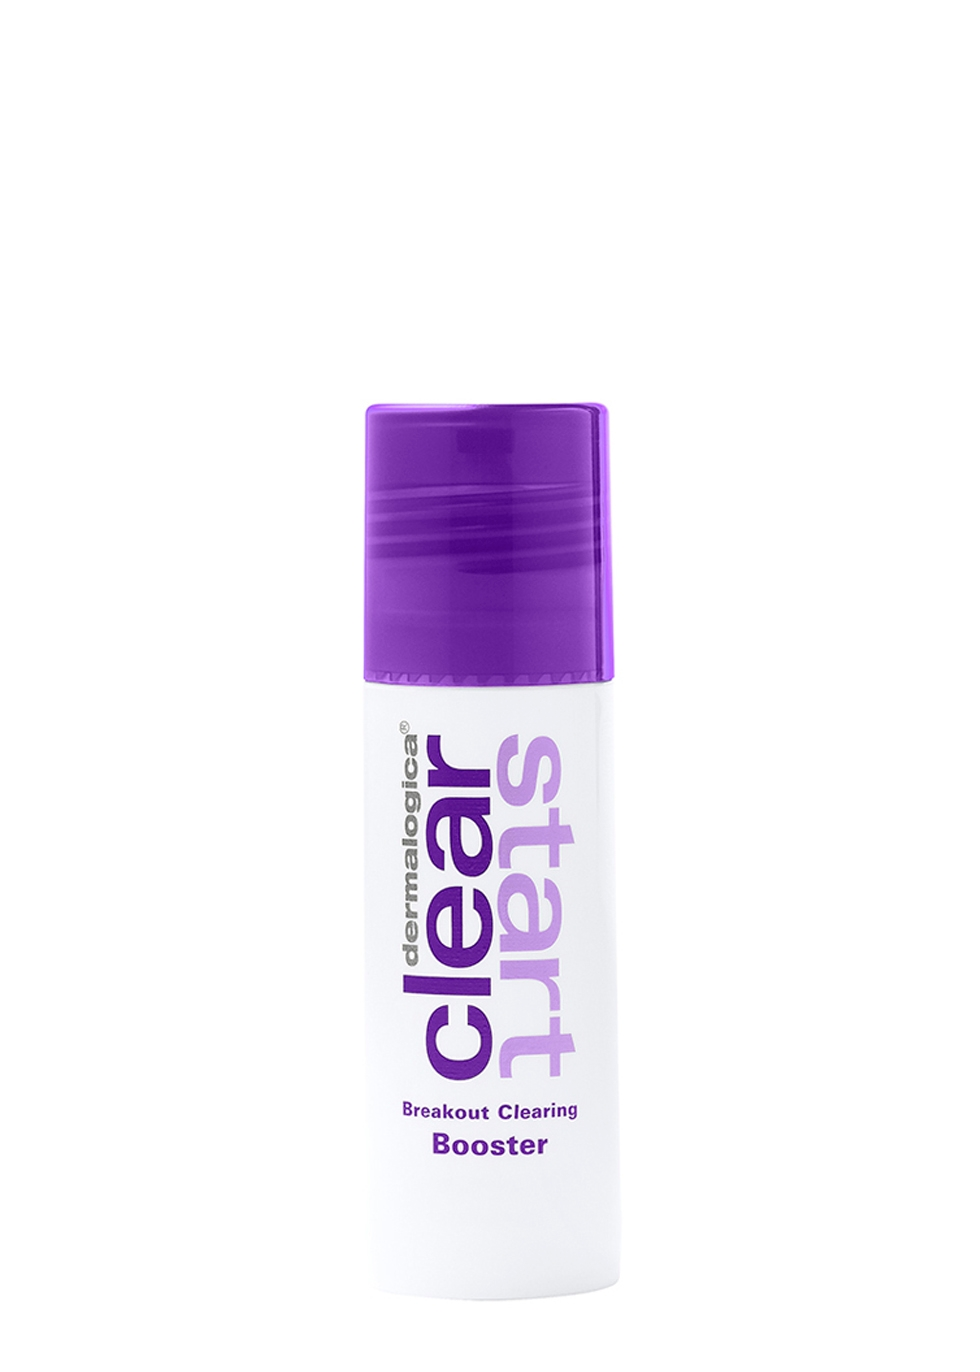 Breakout Clearing Booster 30ml